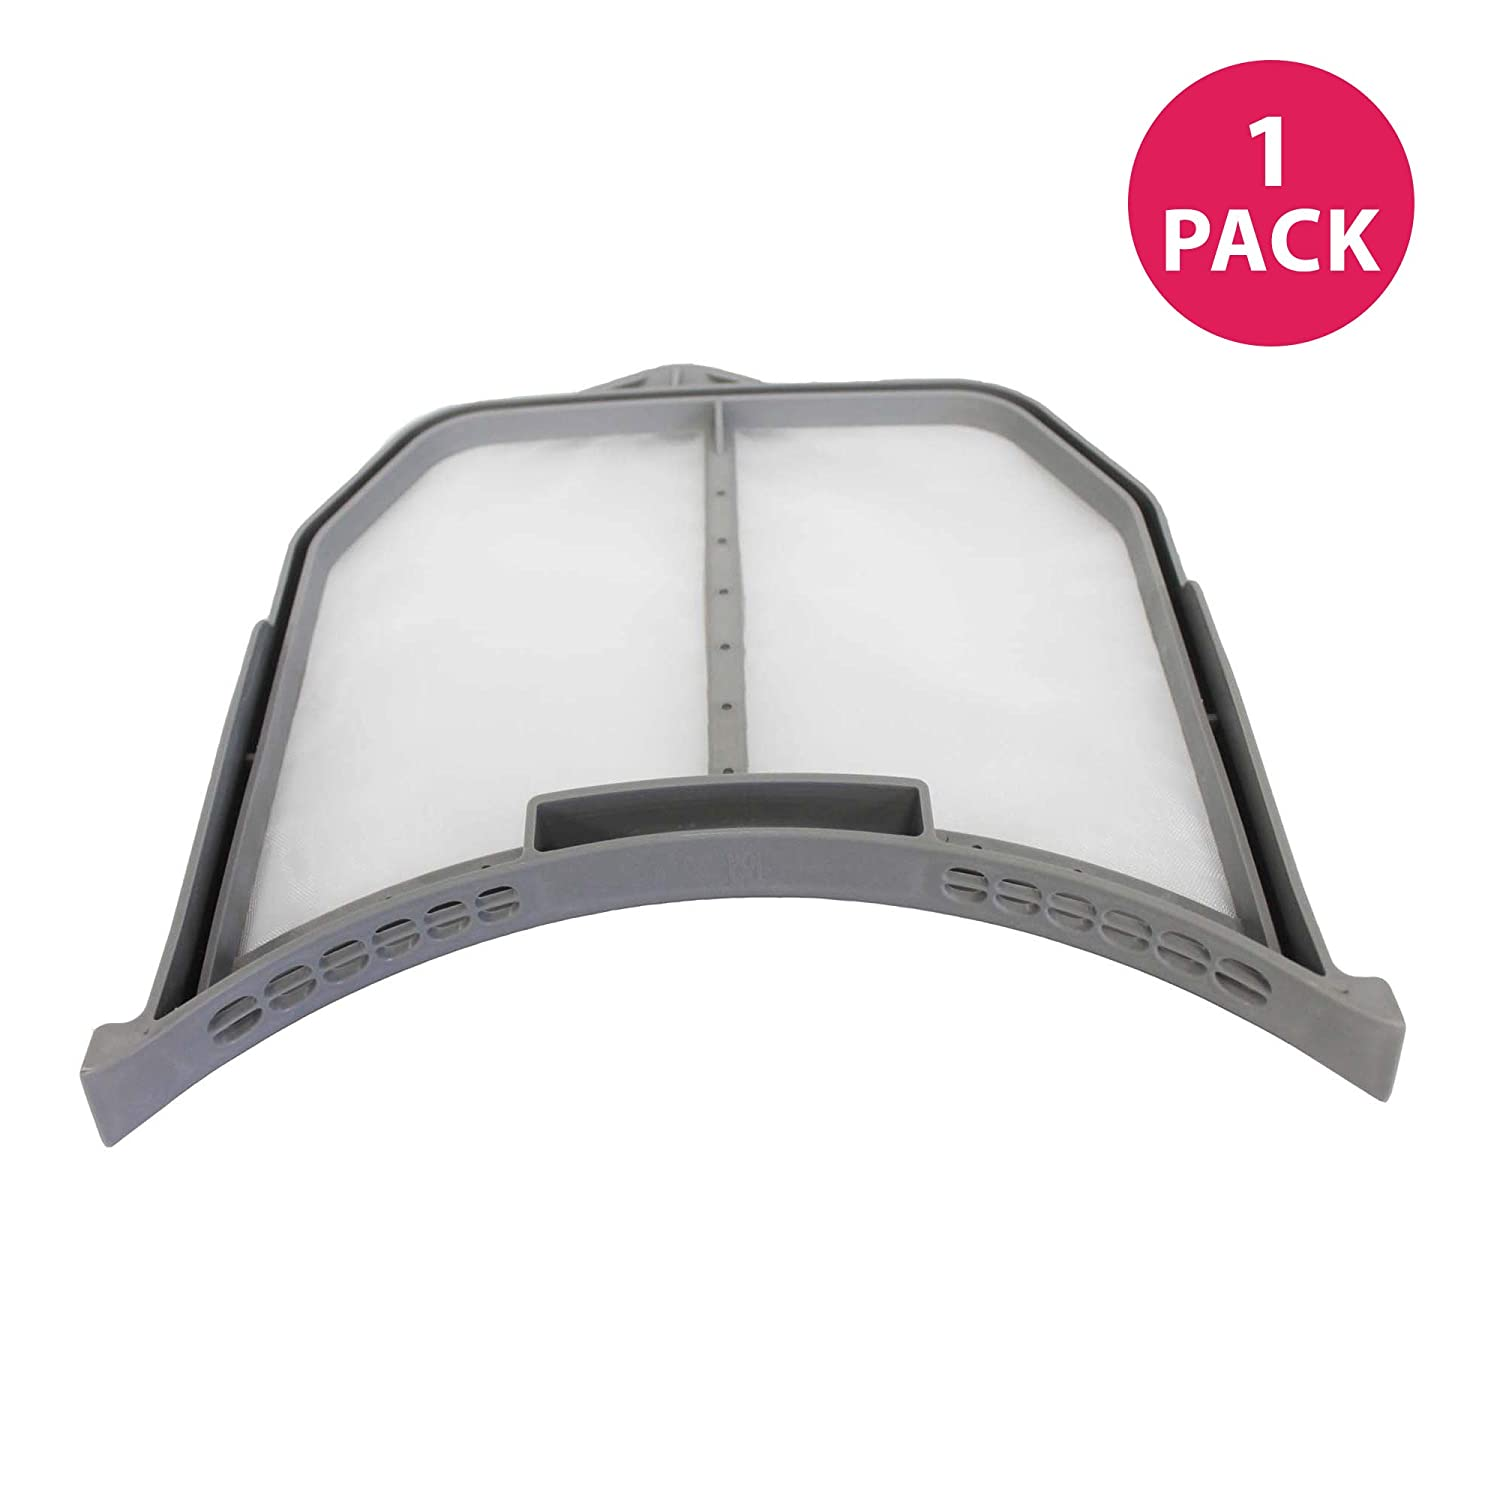 Whirlpool Dryer Lint Filter, Compatible with Part # W10516085